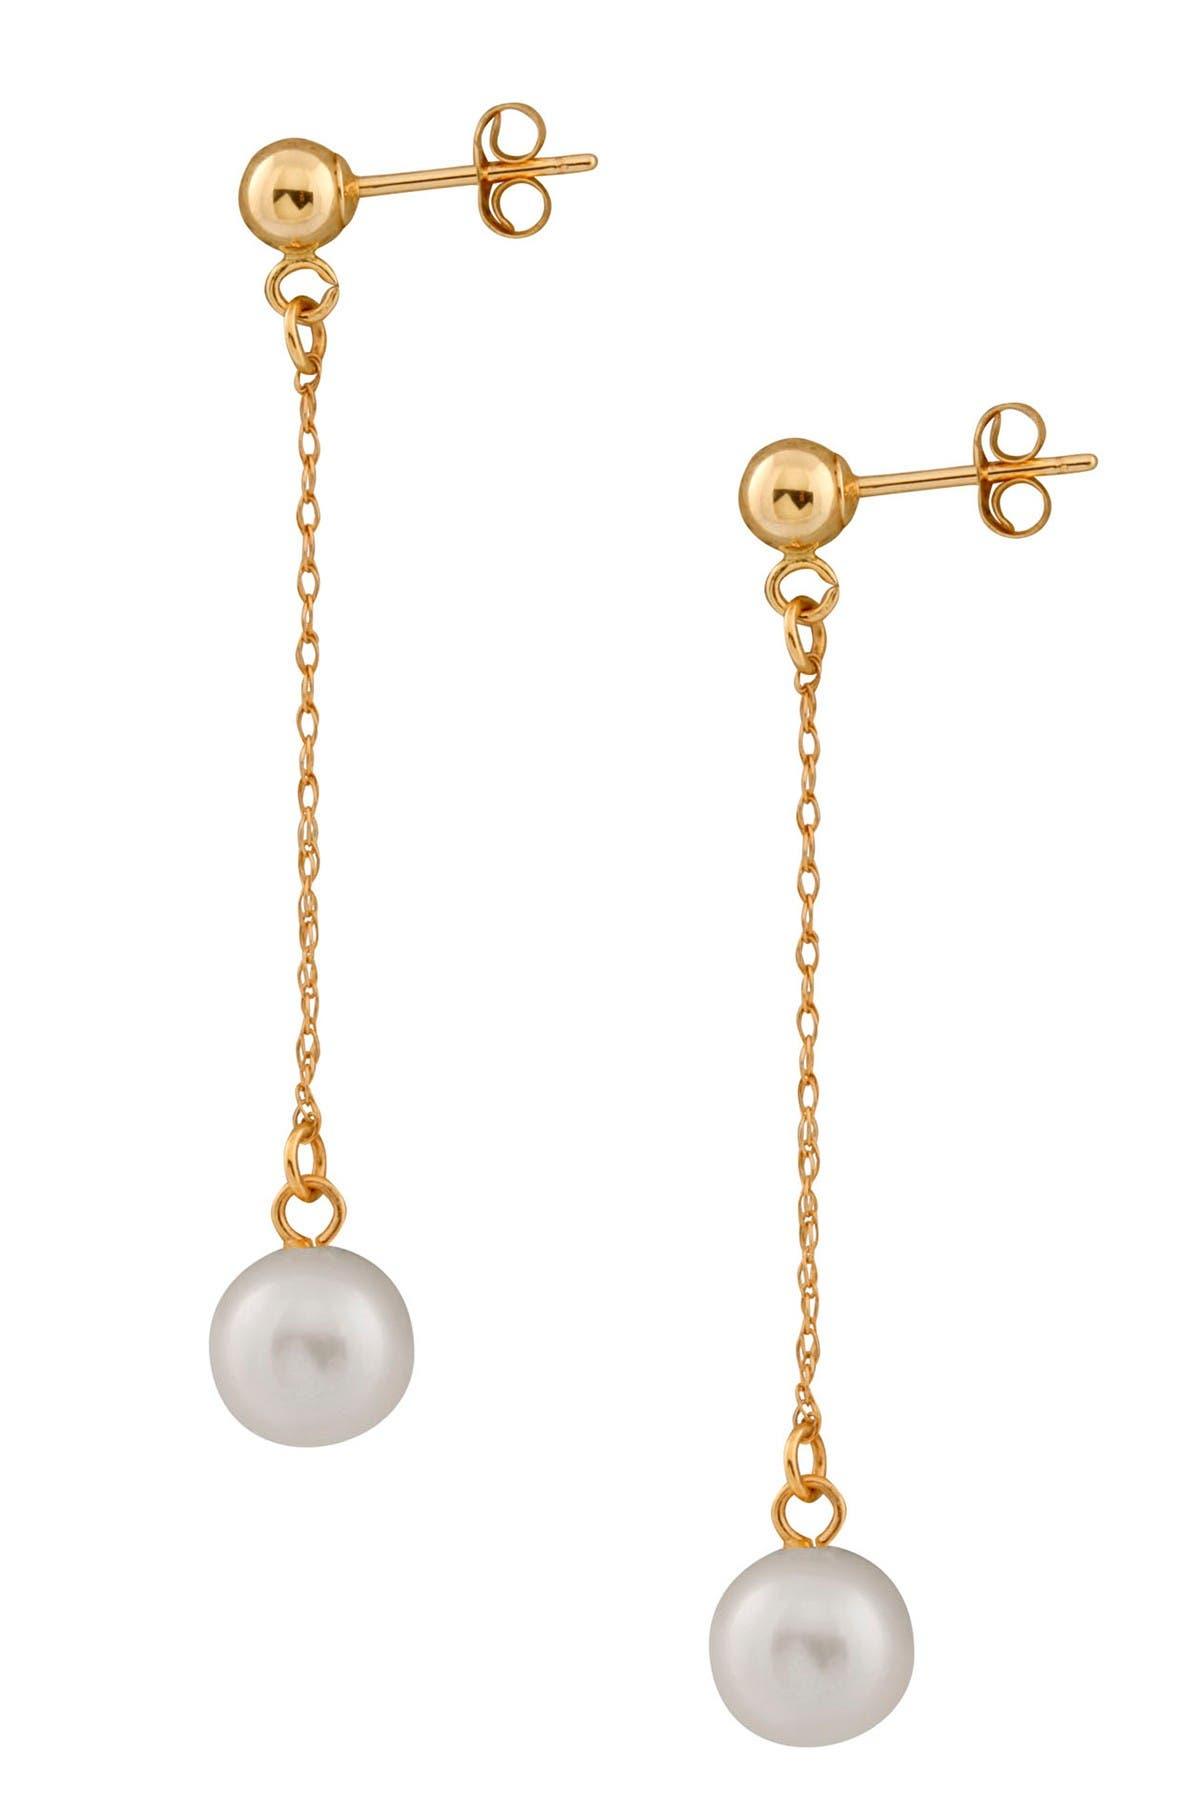 Image of Splendid Pearls 14K Yellow Gold 7-7.5mm Freshwater Pearl Dangling Earrings